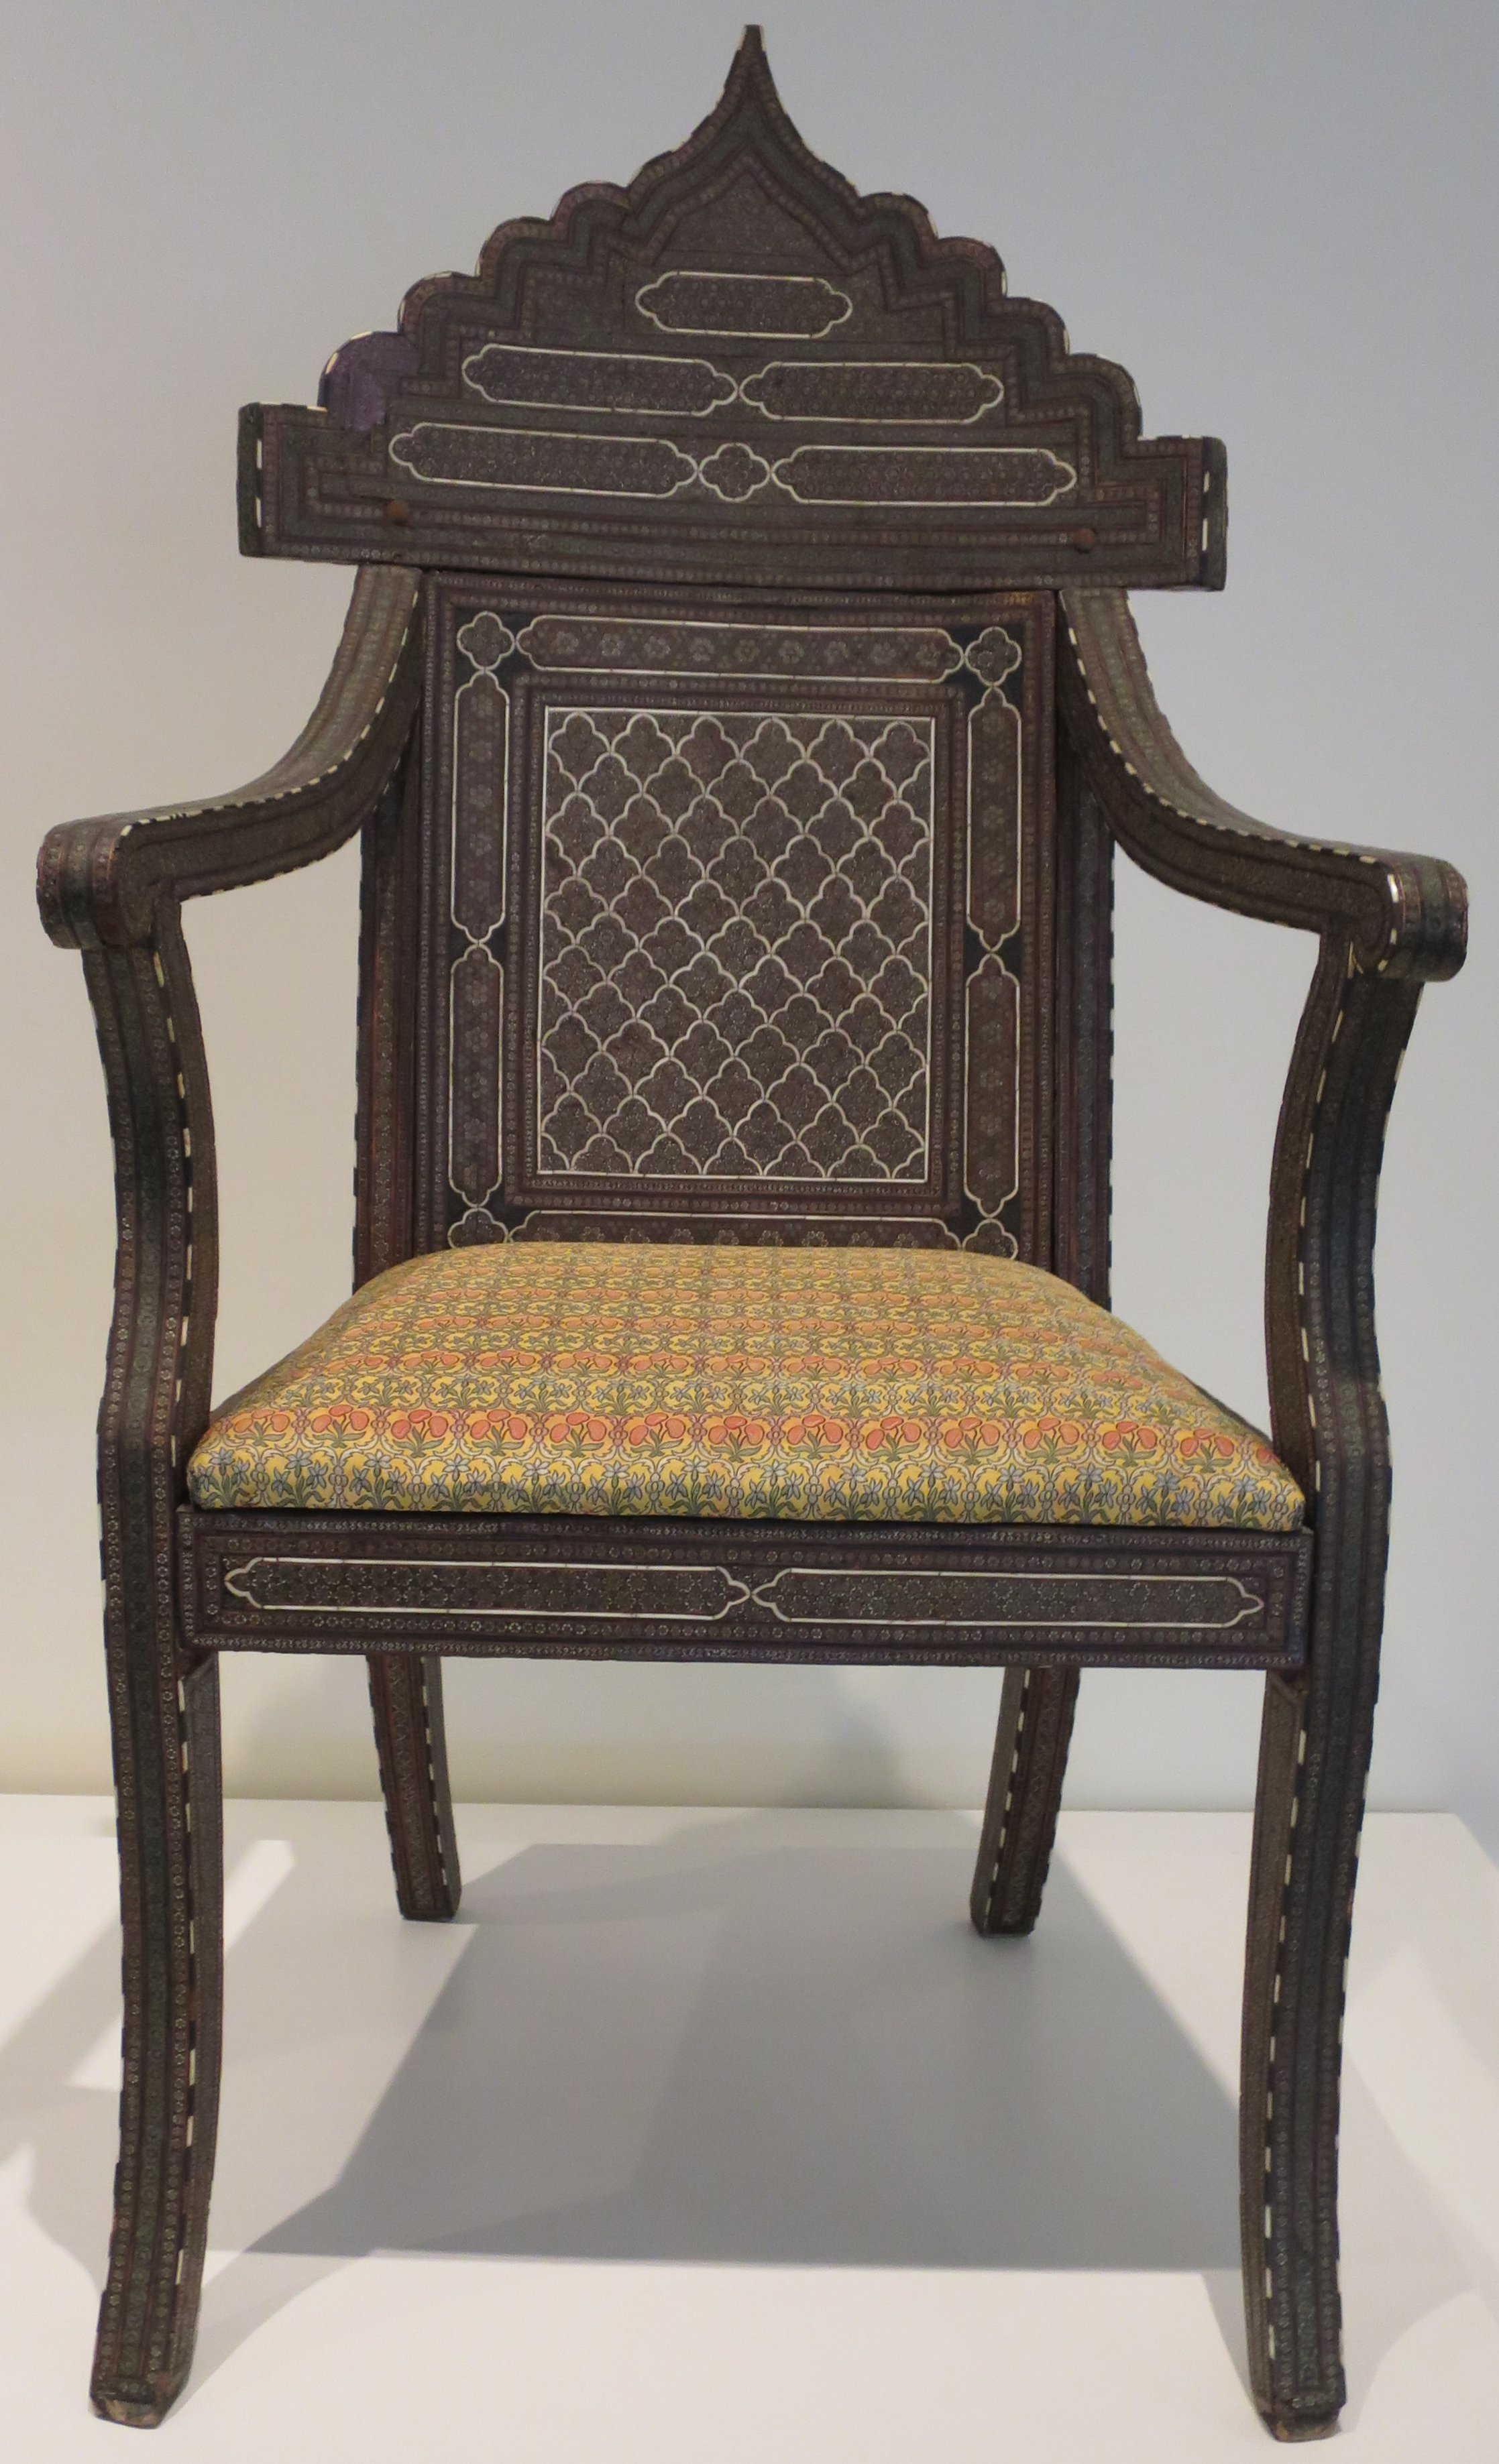 File Chair From Iran Doris Duke Foundation For Islamic